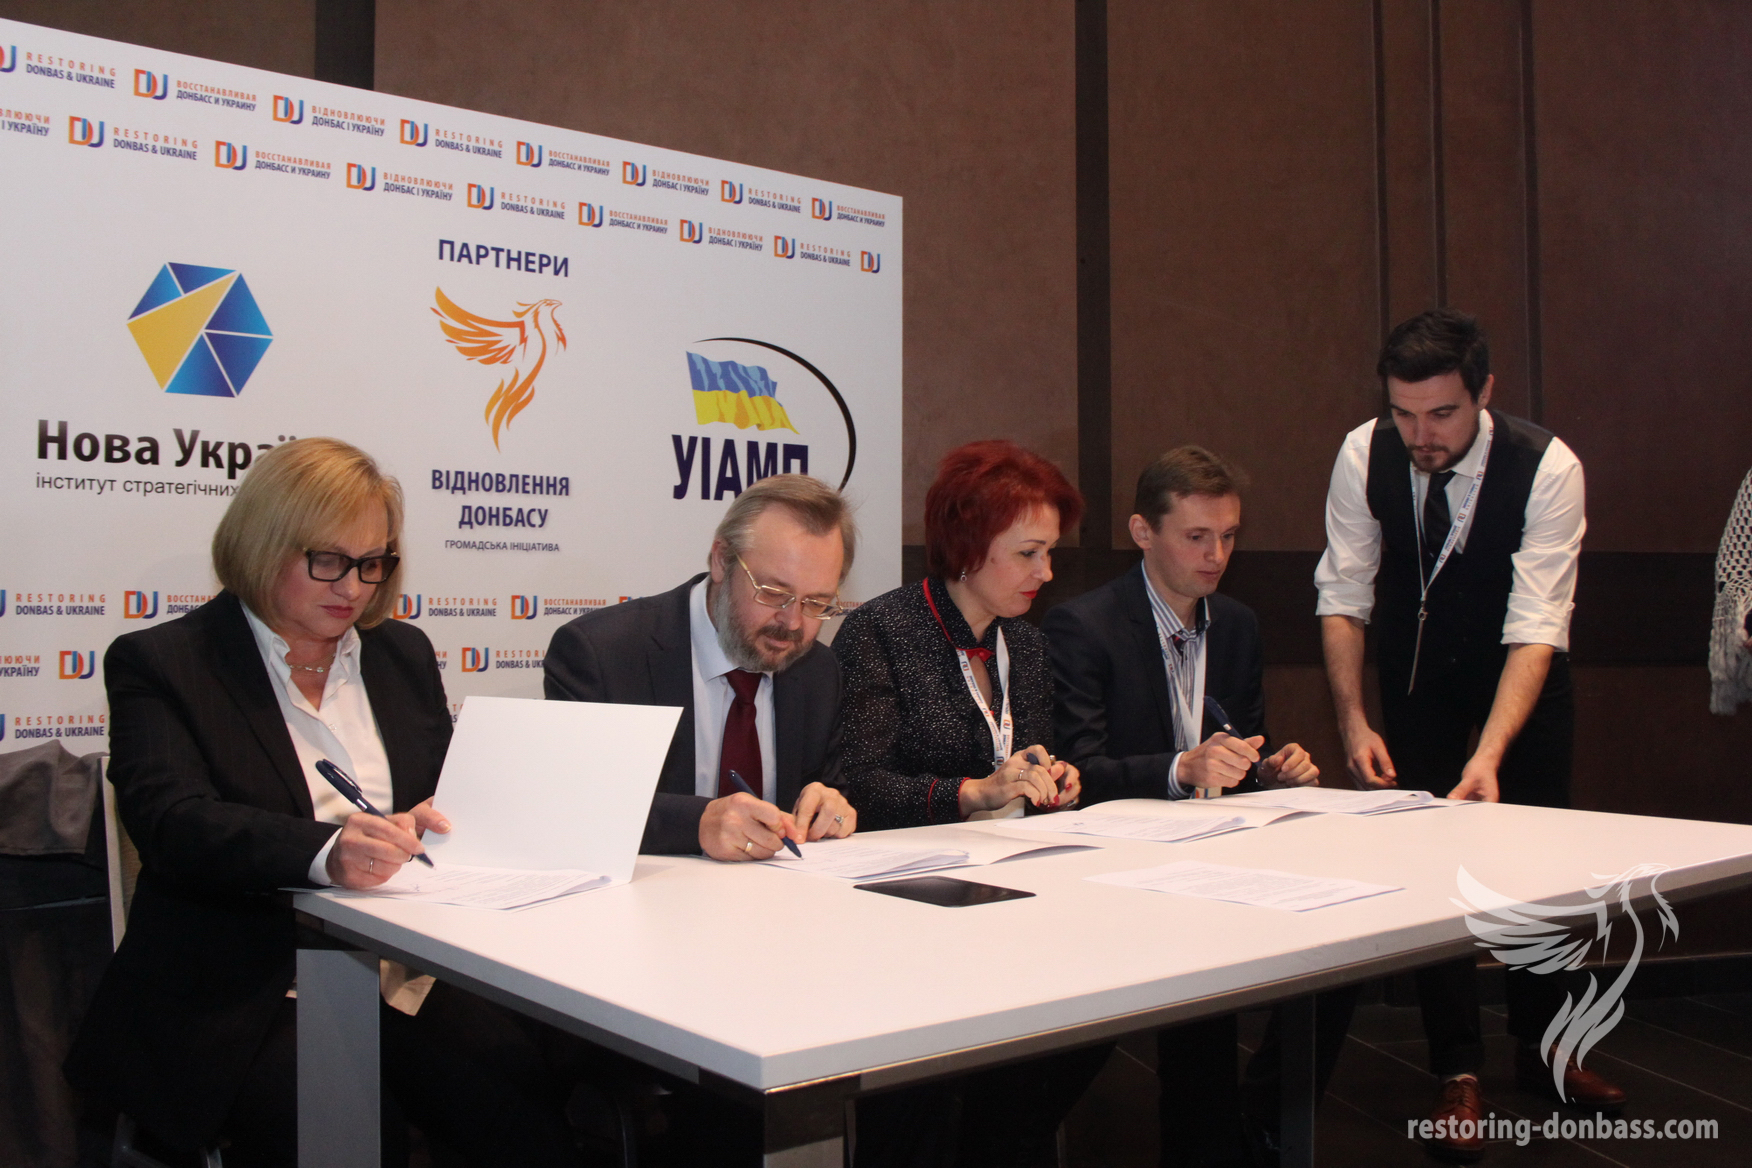 Signing of the Memorandum about cooperation and interaction